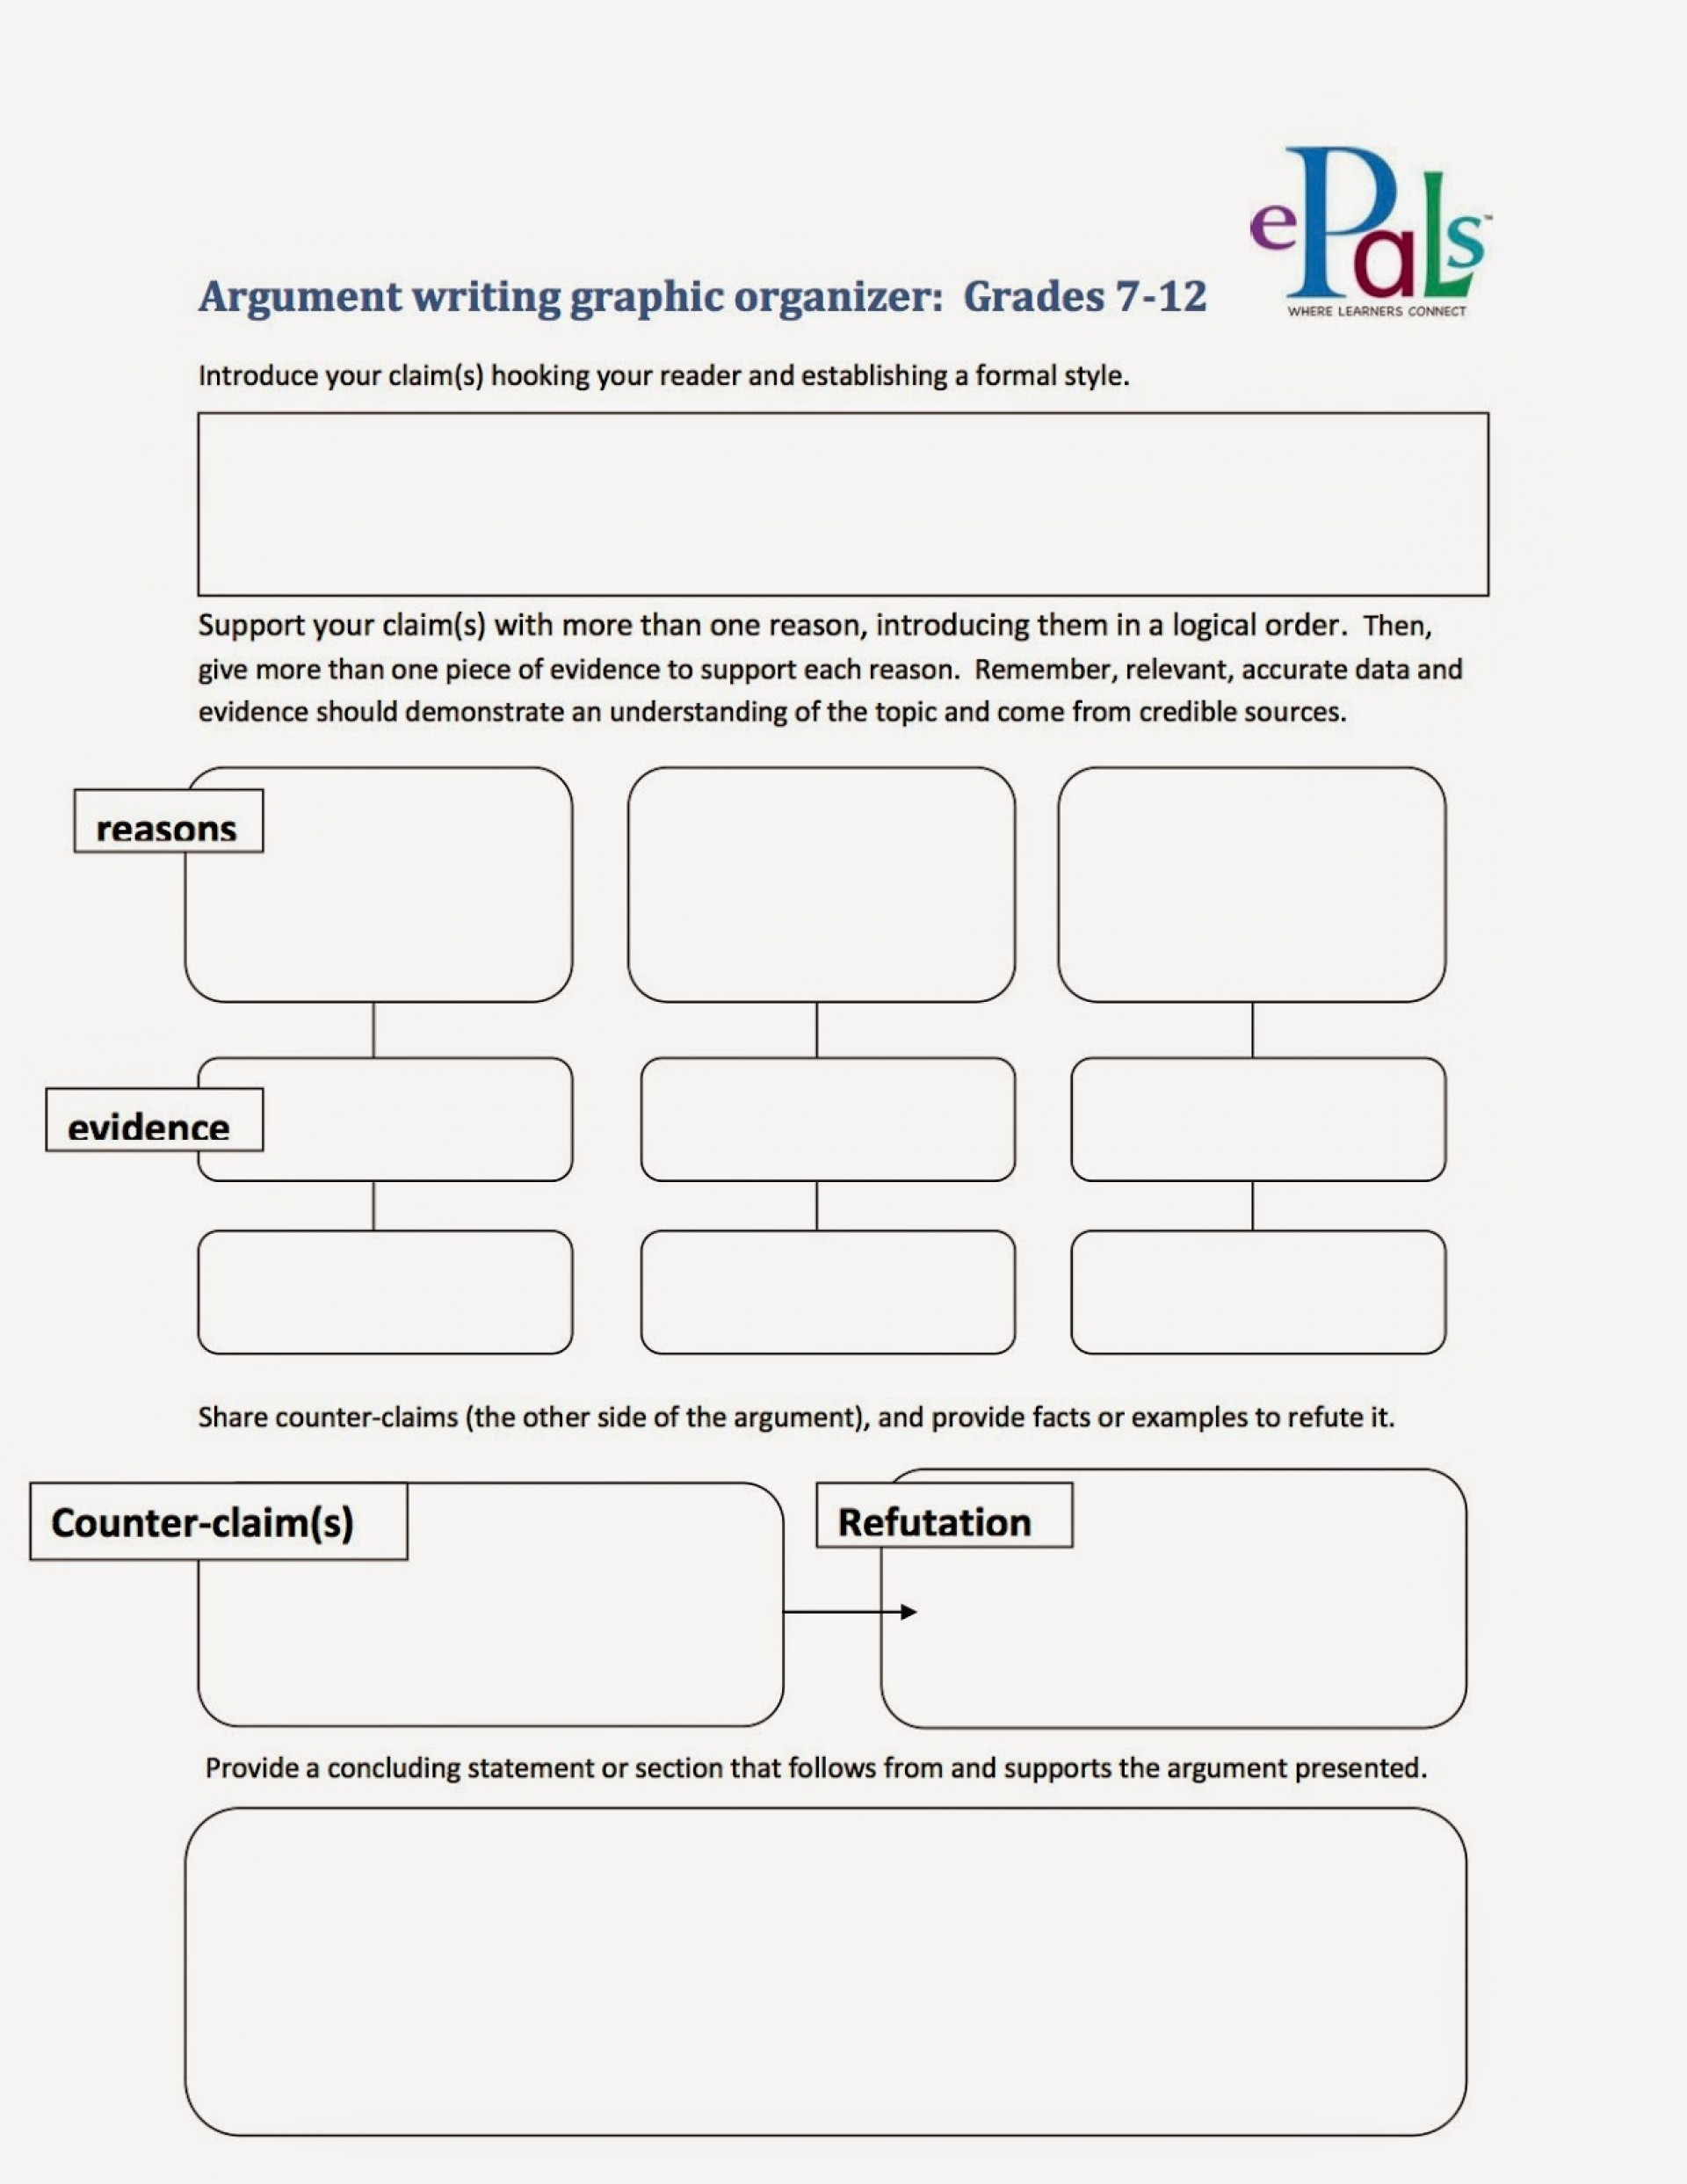 003 Argumentgraphicorganizer2bcopy Essay Example Argumentative Graphic Incredible Organizer For Middle School Pdf 1920